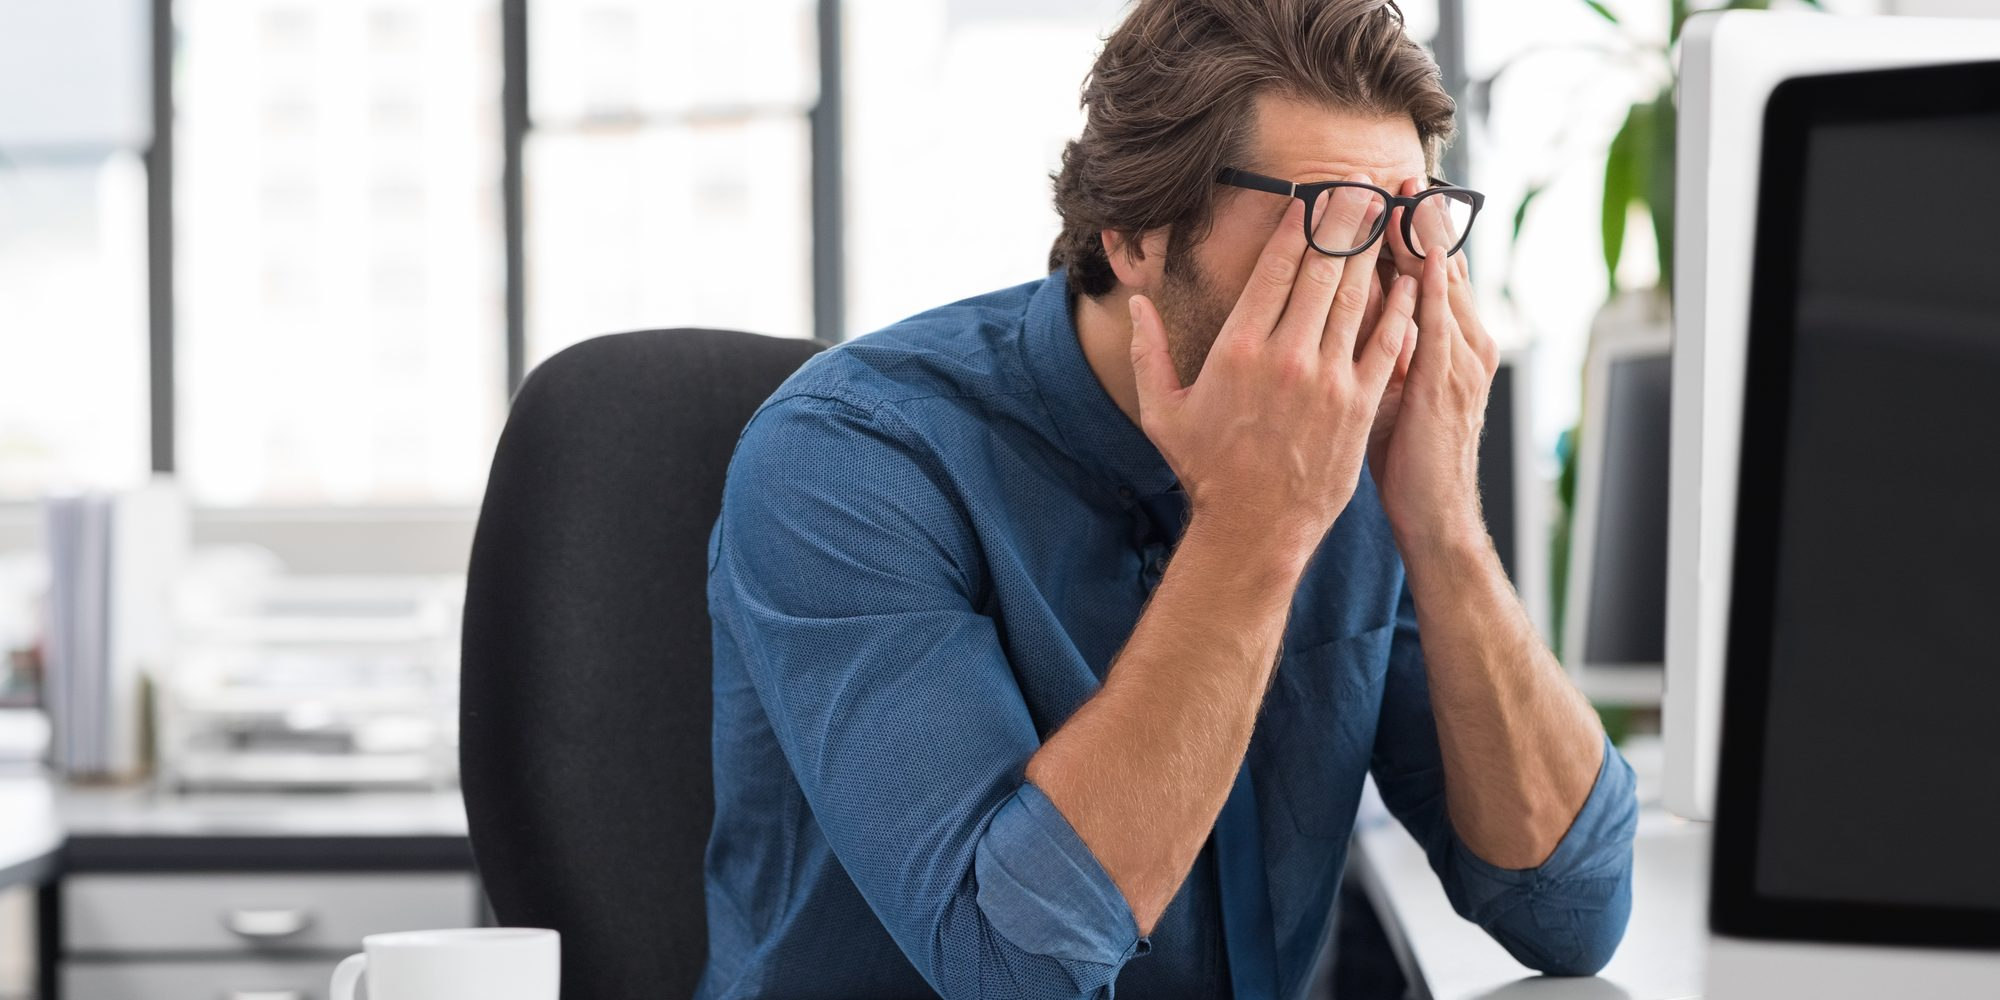 Portrait of an upset businessman at desk in office. Businessman being depressed by working in office. Young stressed business man feeling strain in eyes after working for long hours on computer.